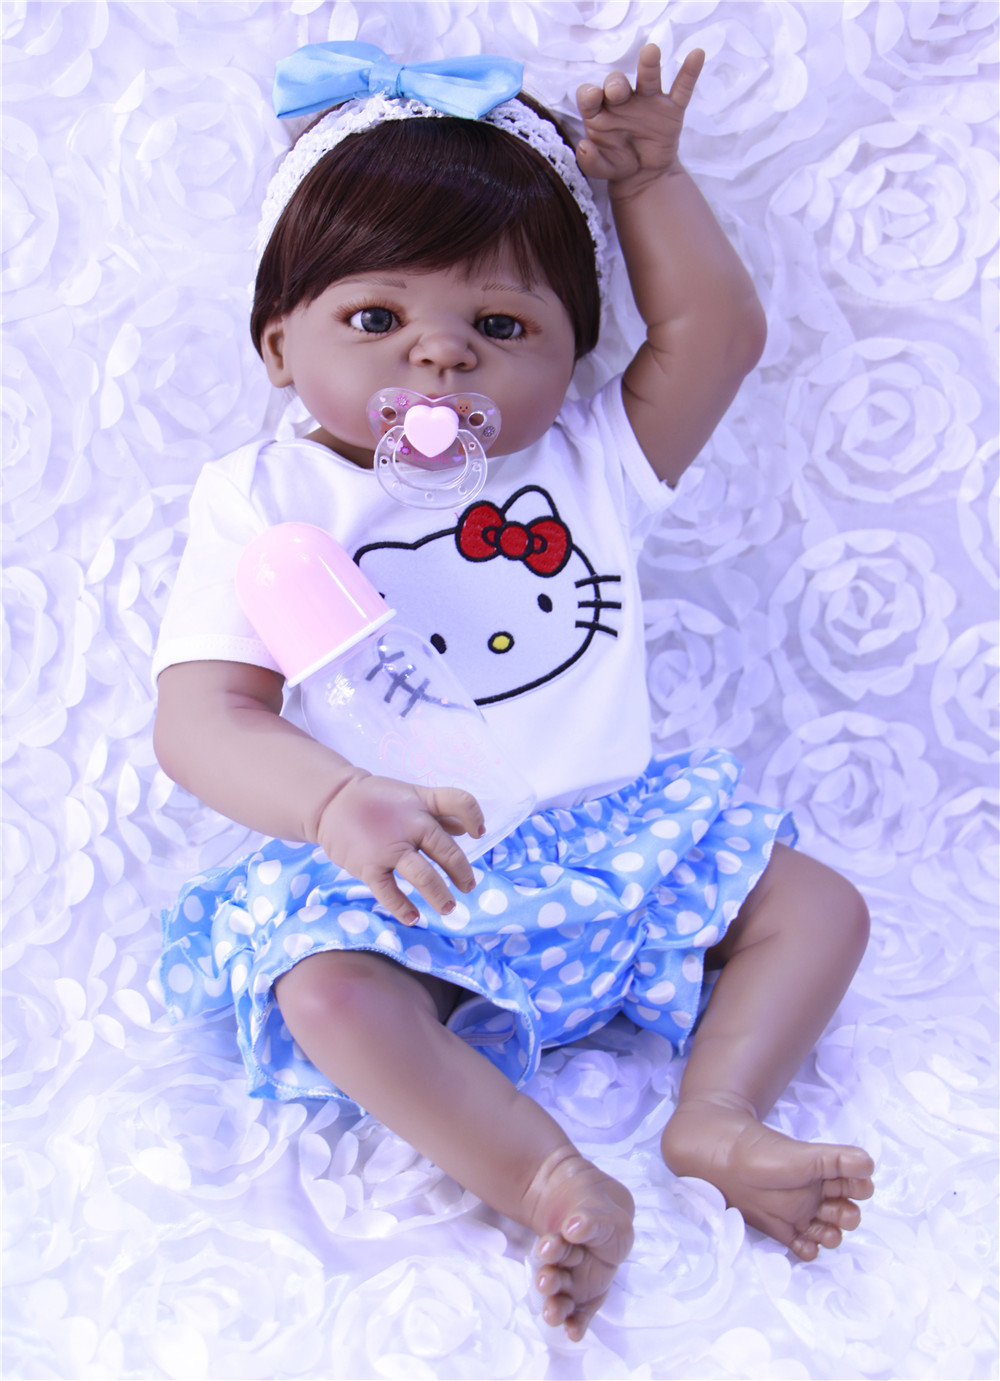 22inch Doll Alive Bebe Reborn Dol With Soft Real Gentle Touch Handmade Full Silicone 55cm Lifelike Newborn Baby Gift Sweet Baby